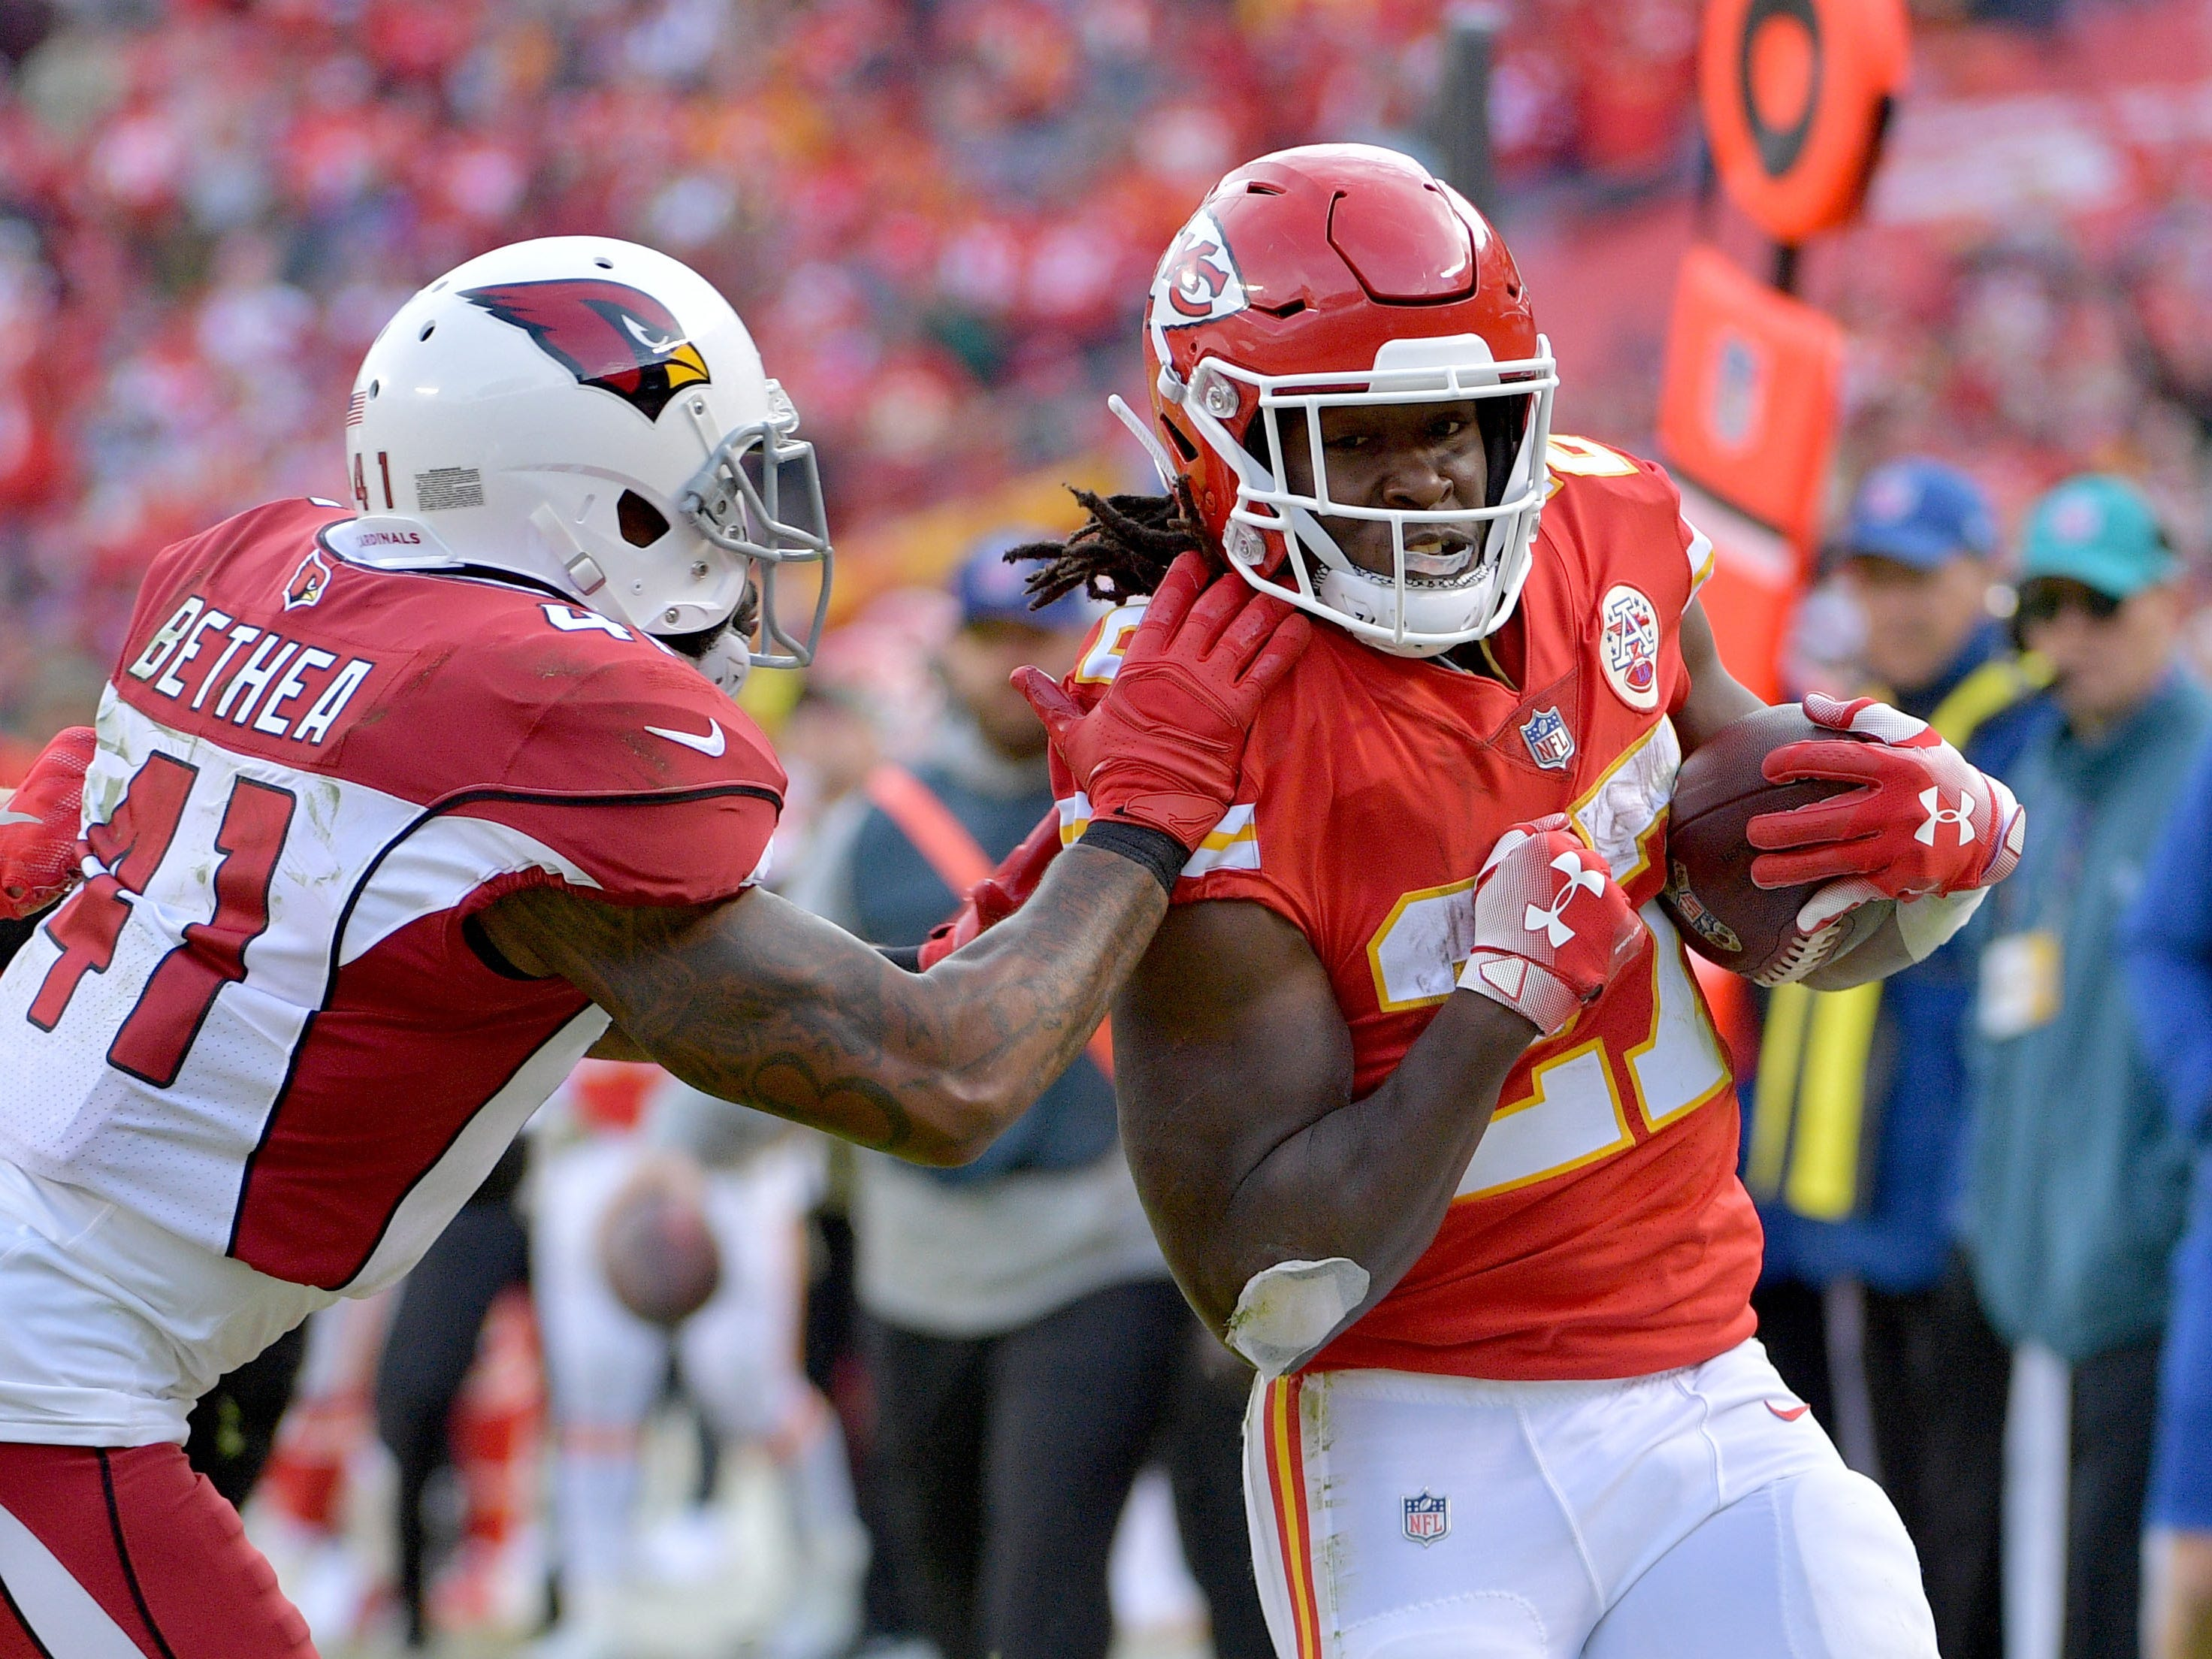 Nov 11, 2018; Kansas City, MO, USA; Kansas City Chiefs running back Kareem Hunt (27) runs the ball as Arizona Cardinals free safety Antoine Bethea (41) attempts the tackle during the second half at Arrowhead Stadium. The Chiefs won 26-14. Mandatory Credit: Denny Medley-USA TODAY Sports